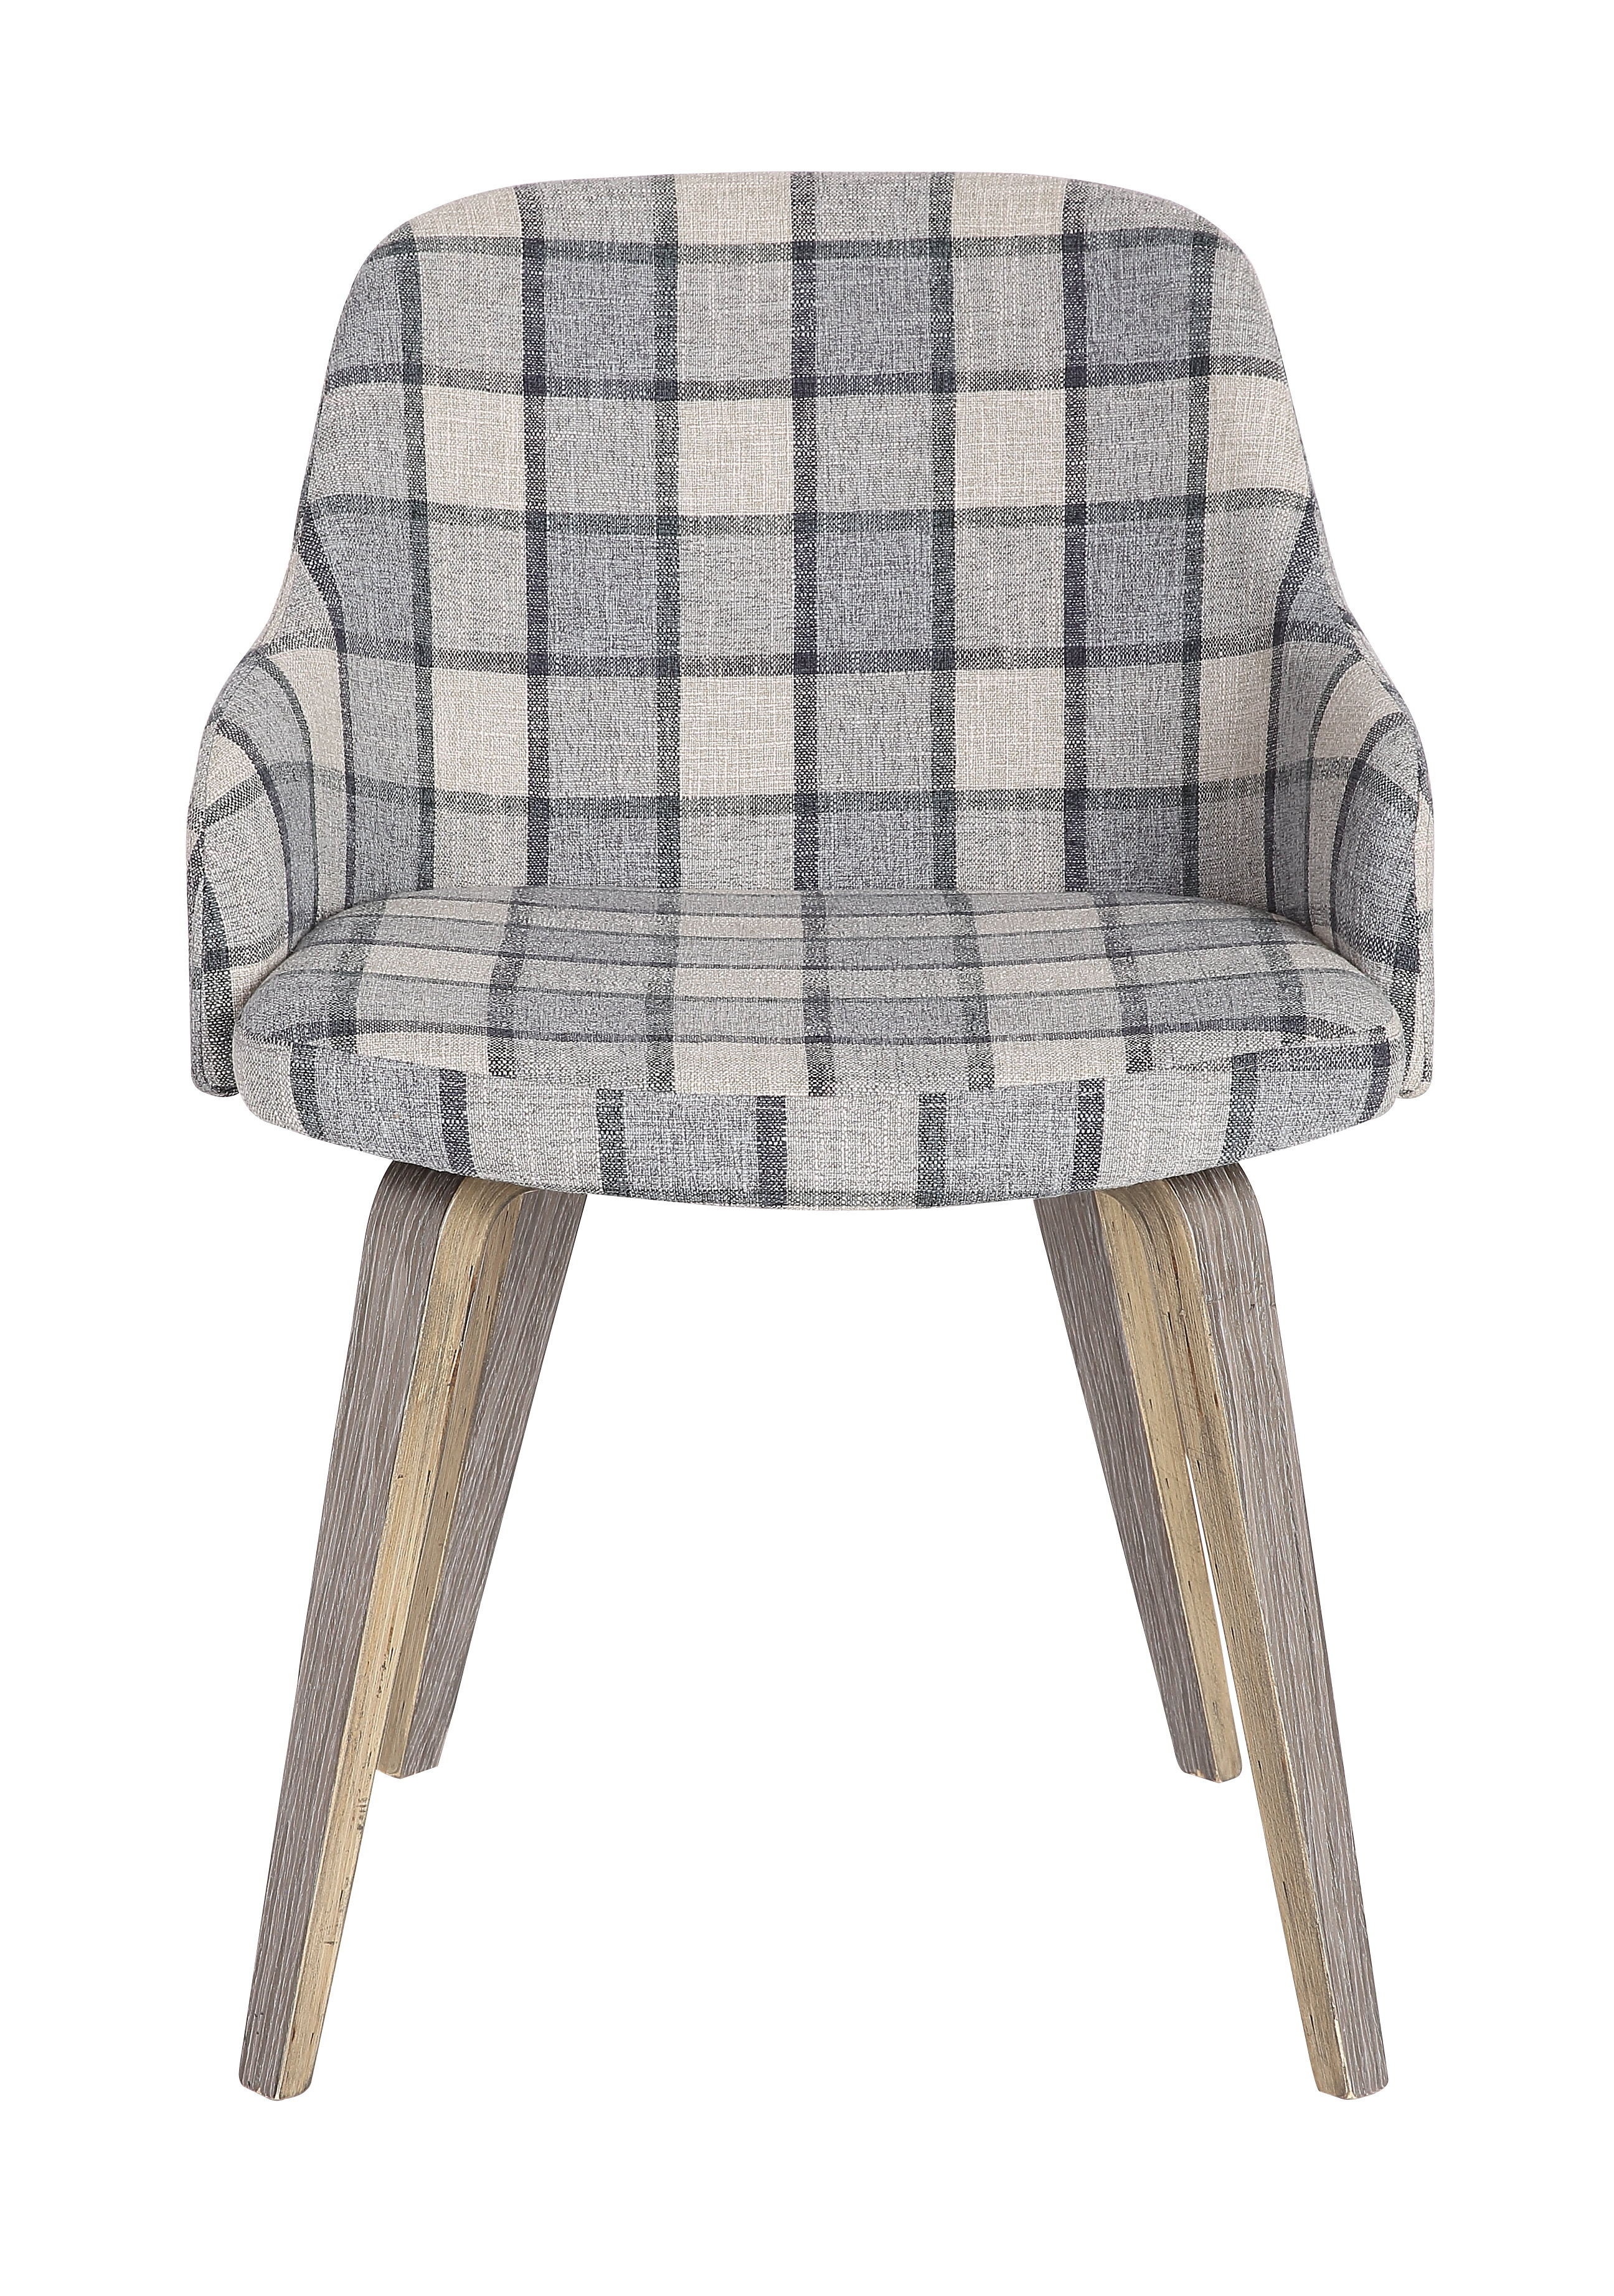 Union Rustic Shenna Mid Century Modern Upholstered Dining Chair